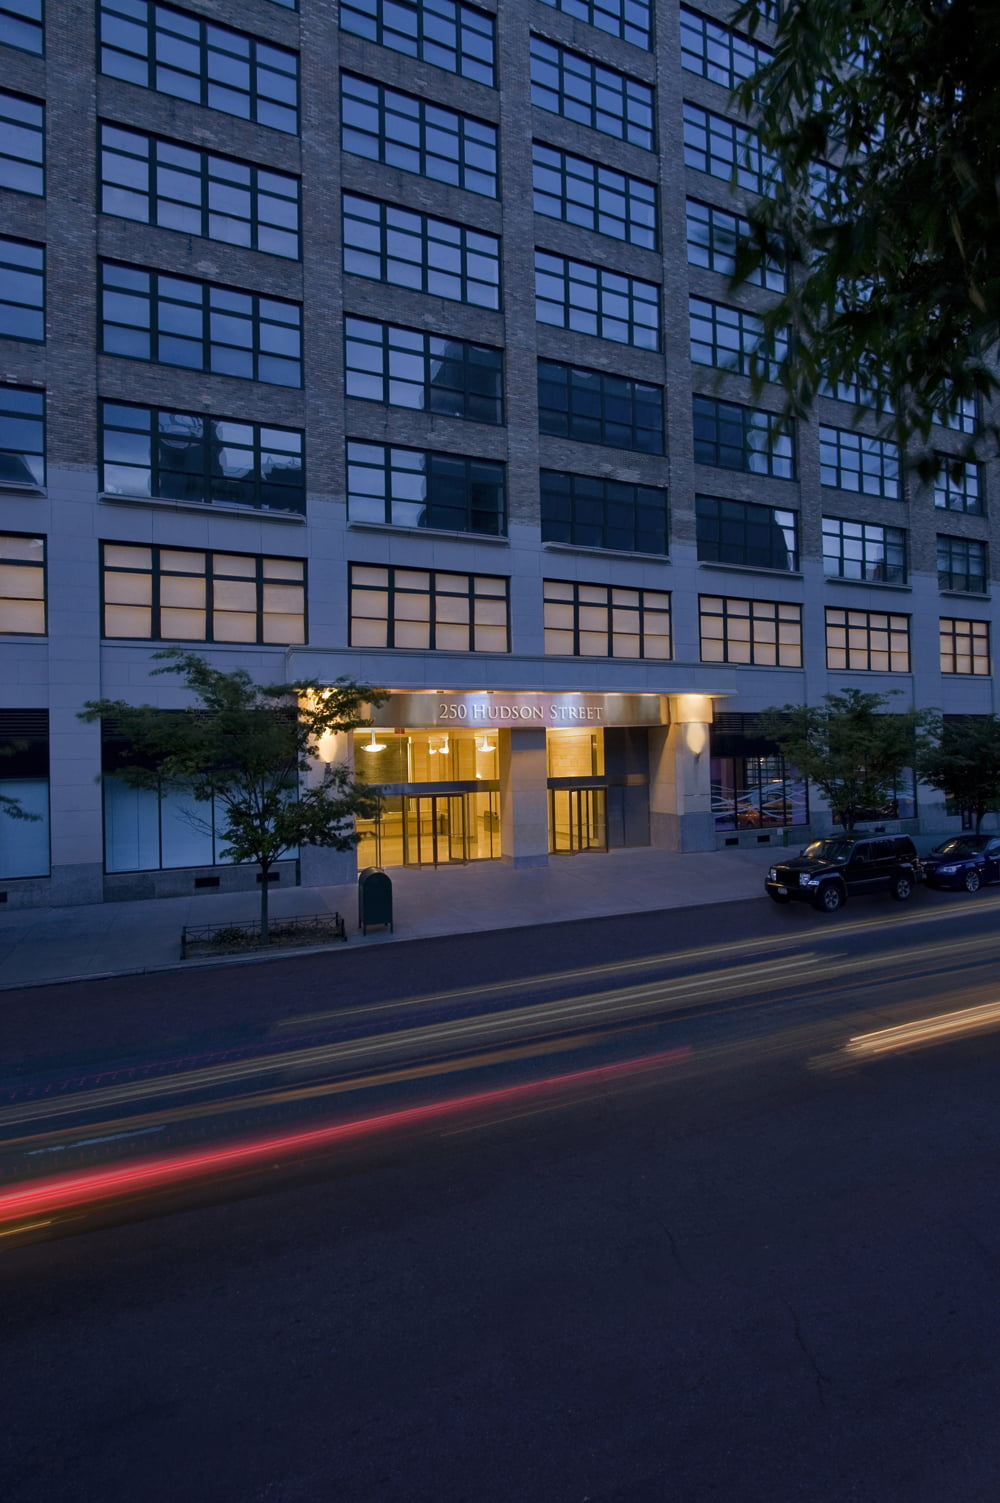 Night view of entryway at 250 Hudson Street at night